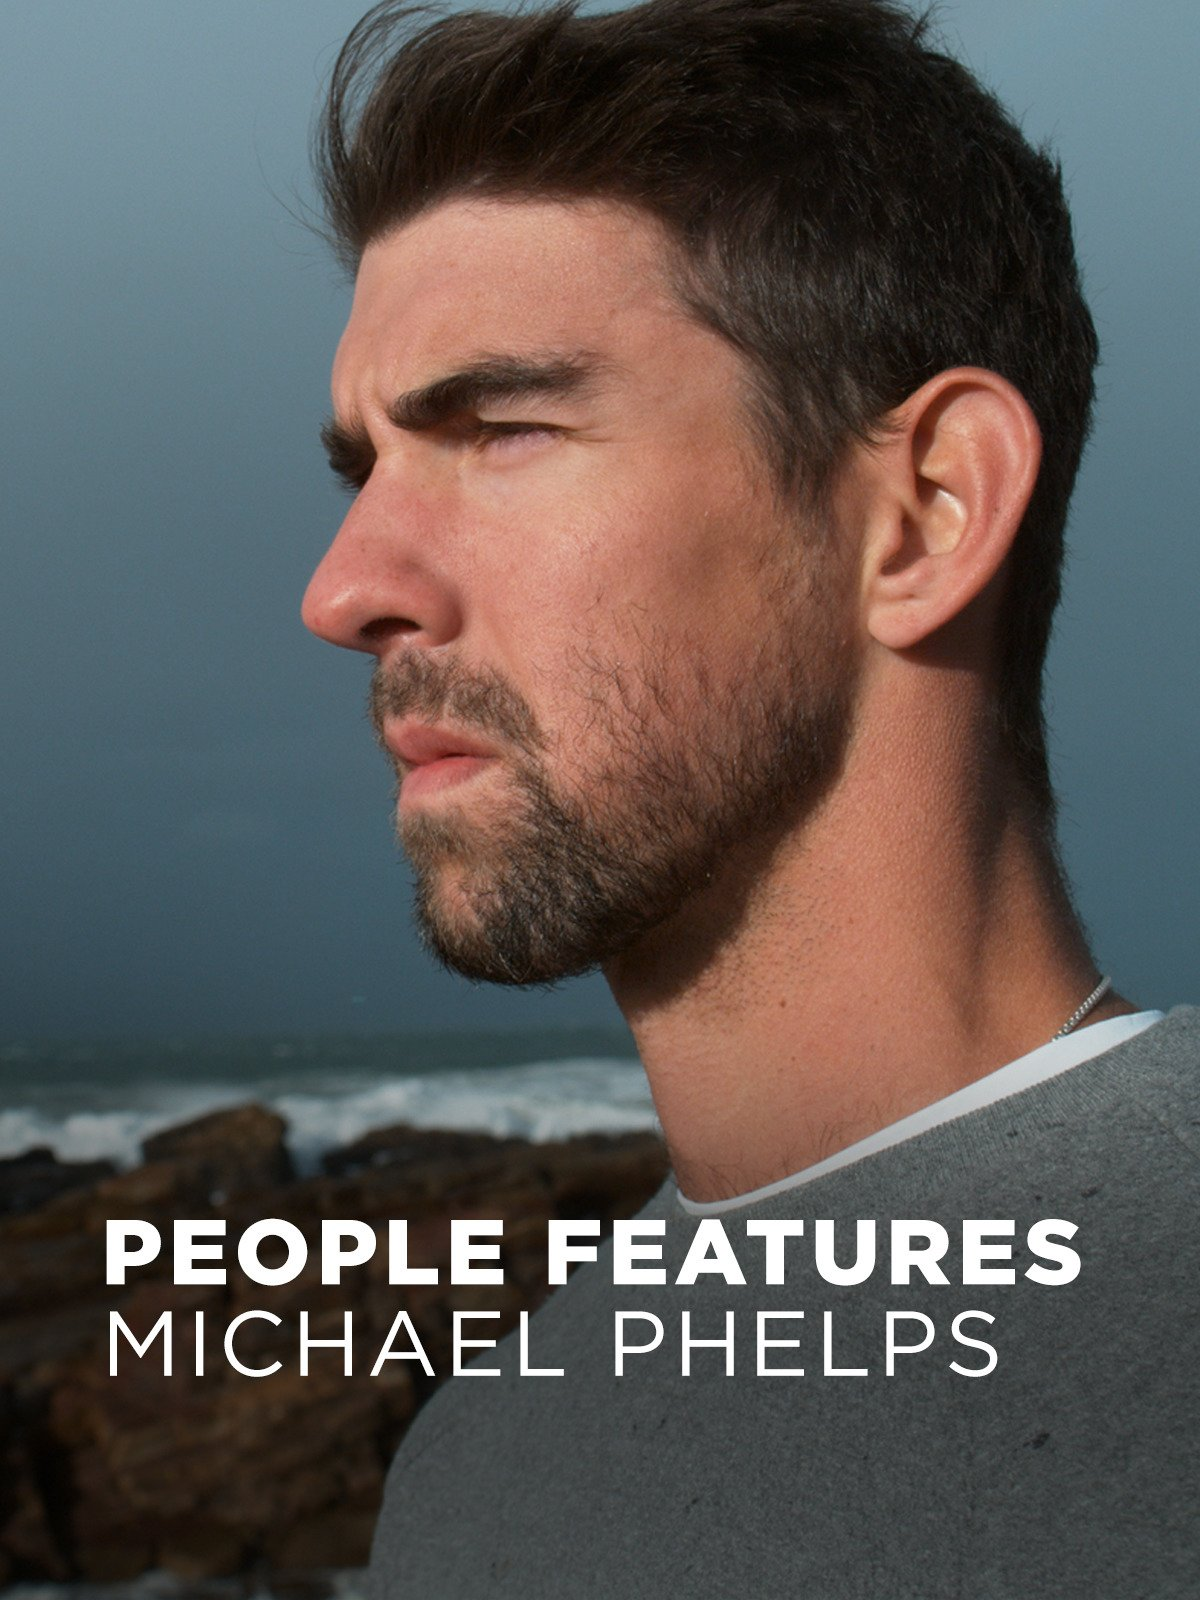 People Feature: Michael Phelps